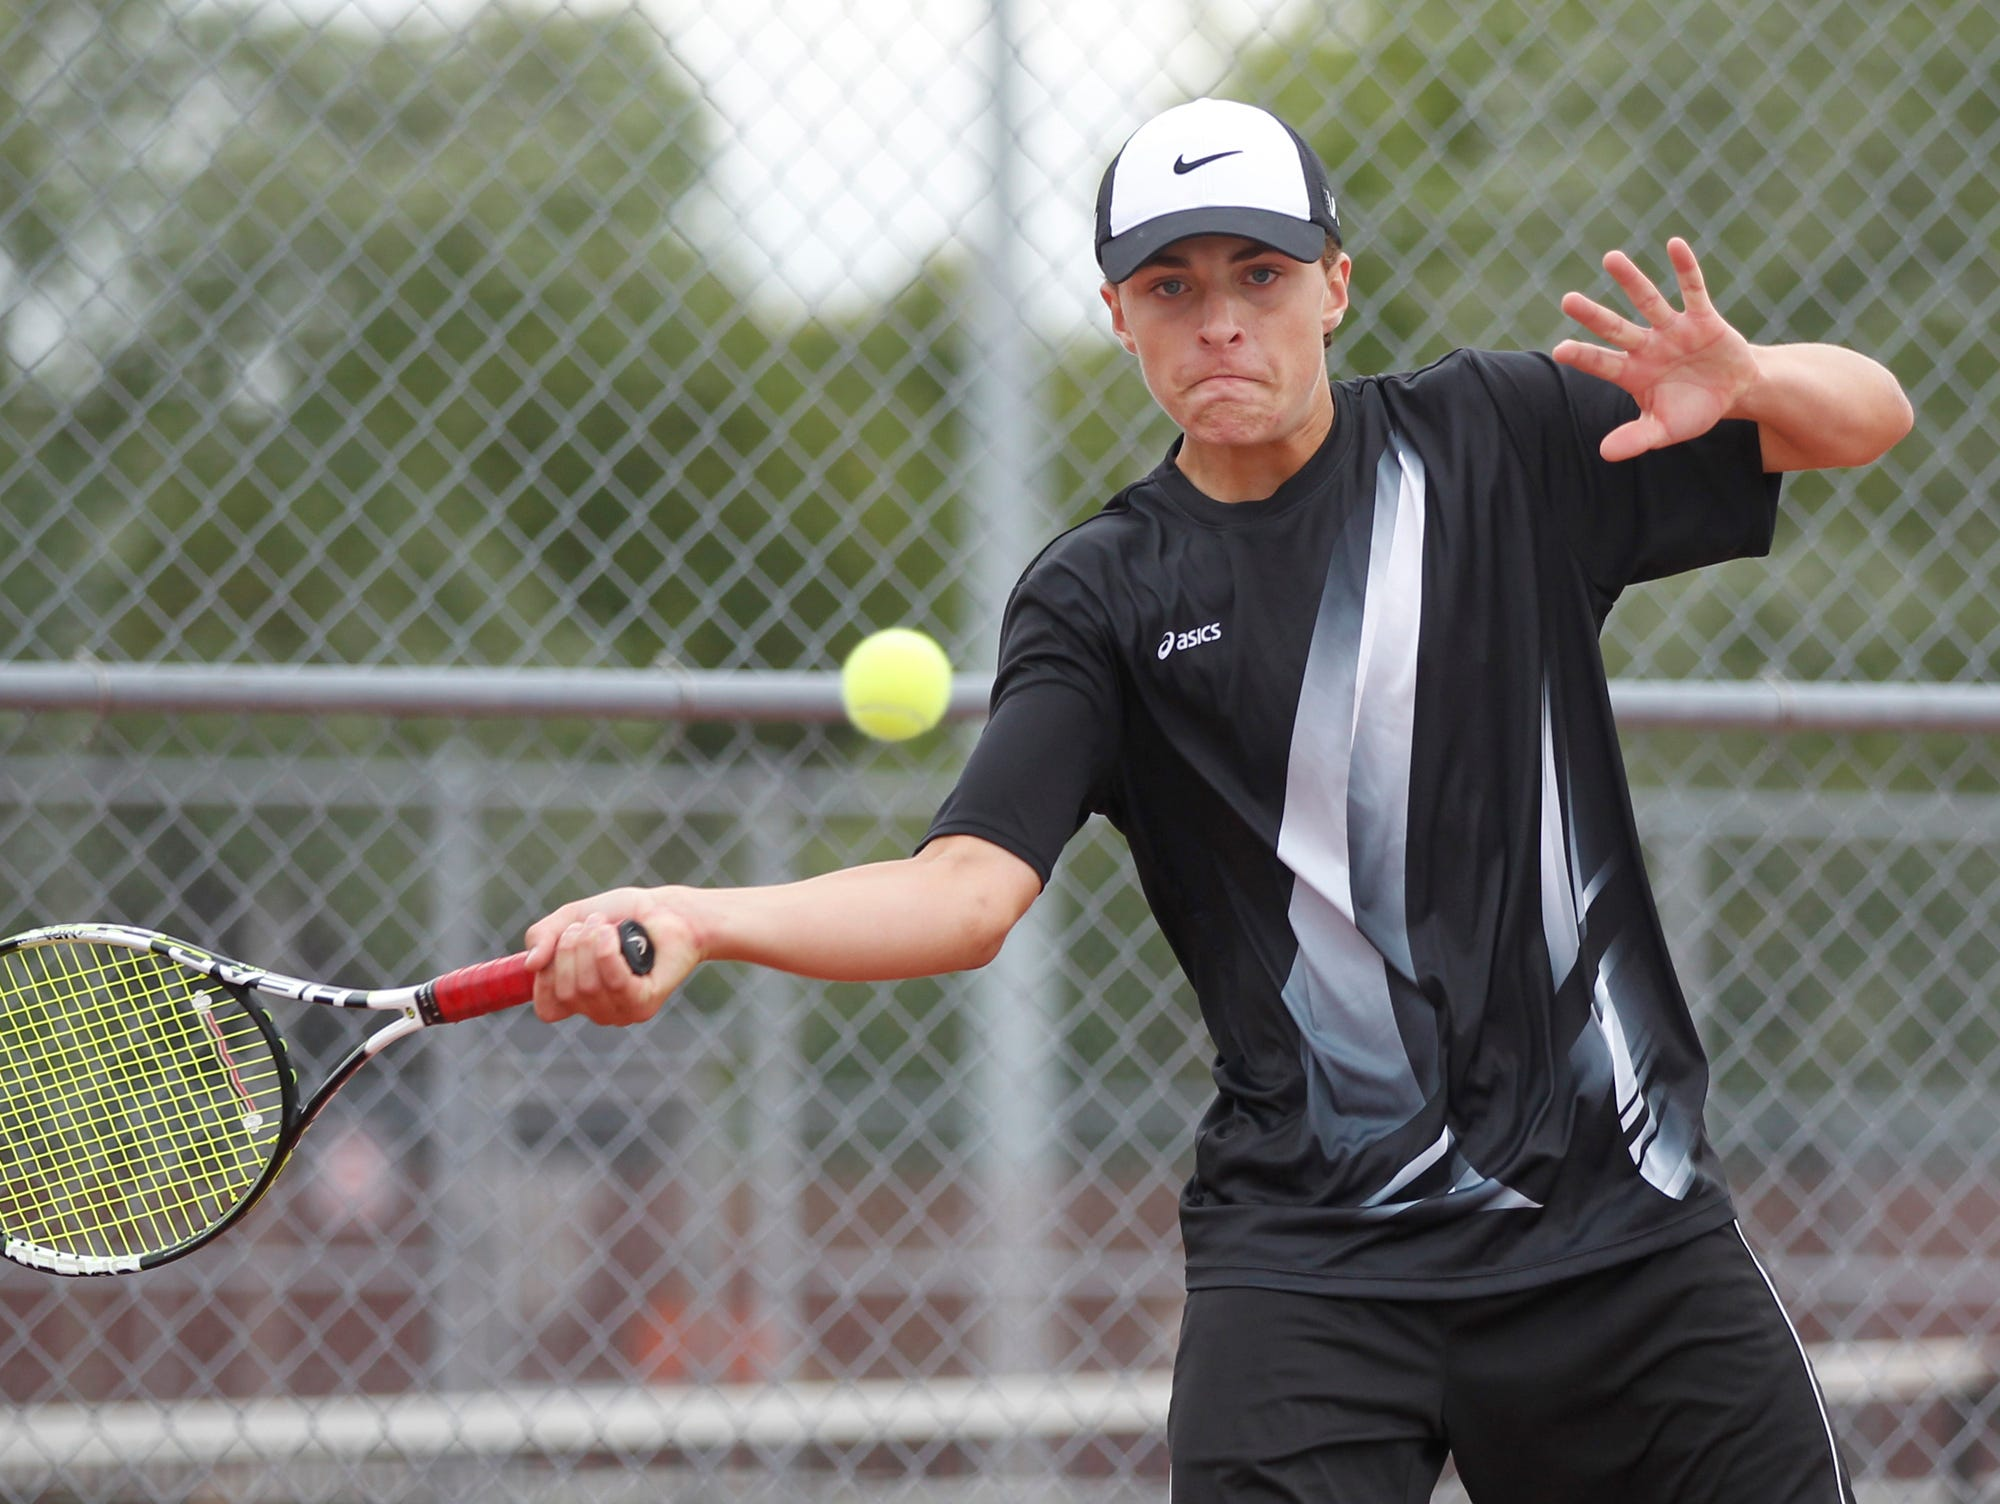 Lafayette Jeff's TJ Preston with a return against West Lafayette's Eric Malone in No. 3 singles during the boys tennis sectional championship Friday, October 2, 2015, at Cumberland Courts in West Lafayette.